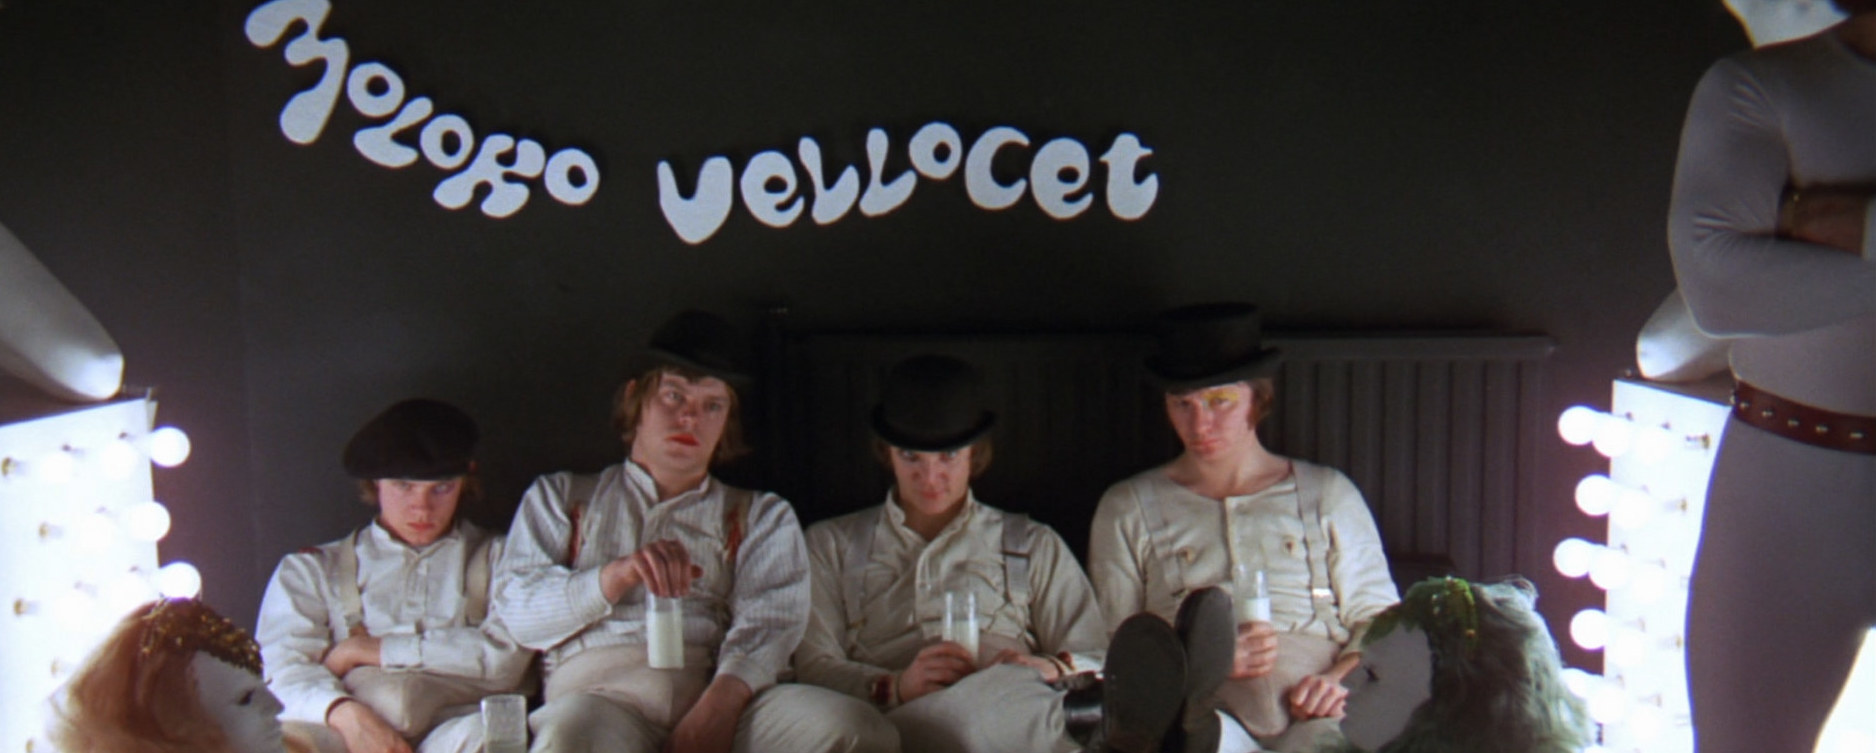 a clockwork orange 4fdbc32f745f5 e1417643249508 - A droog mural